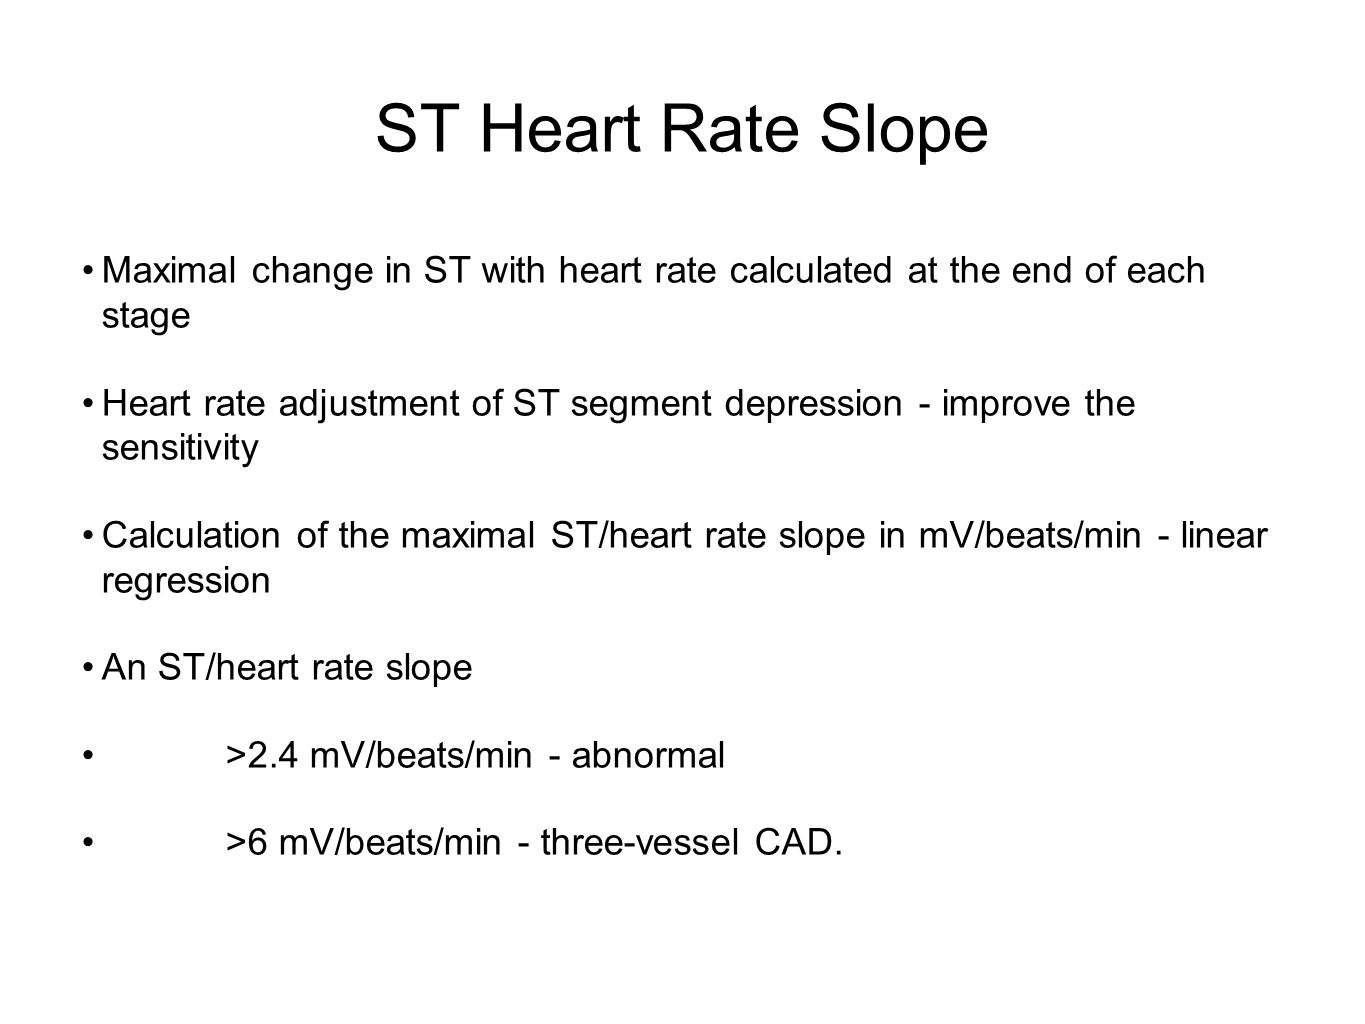 ST Heart Rate Slope Maximal change in ST with heart rate calculated at the end of each stage.